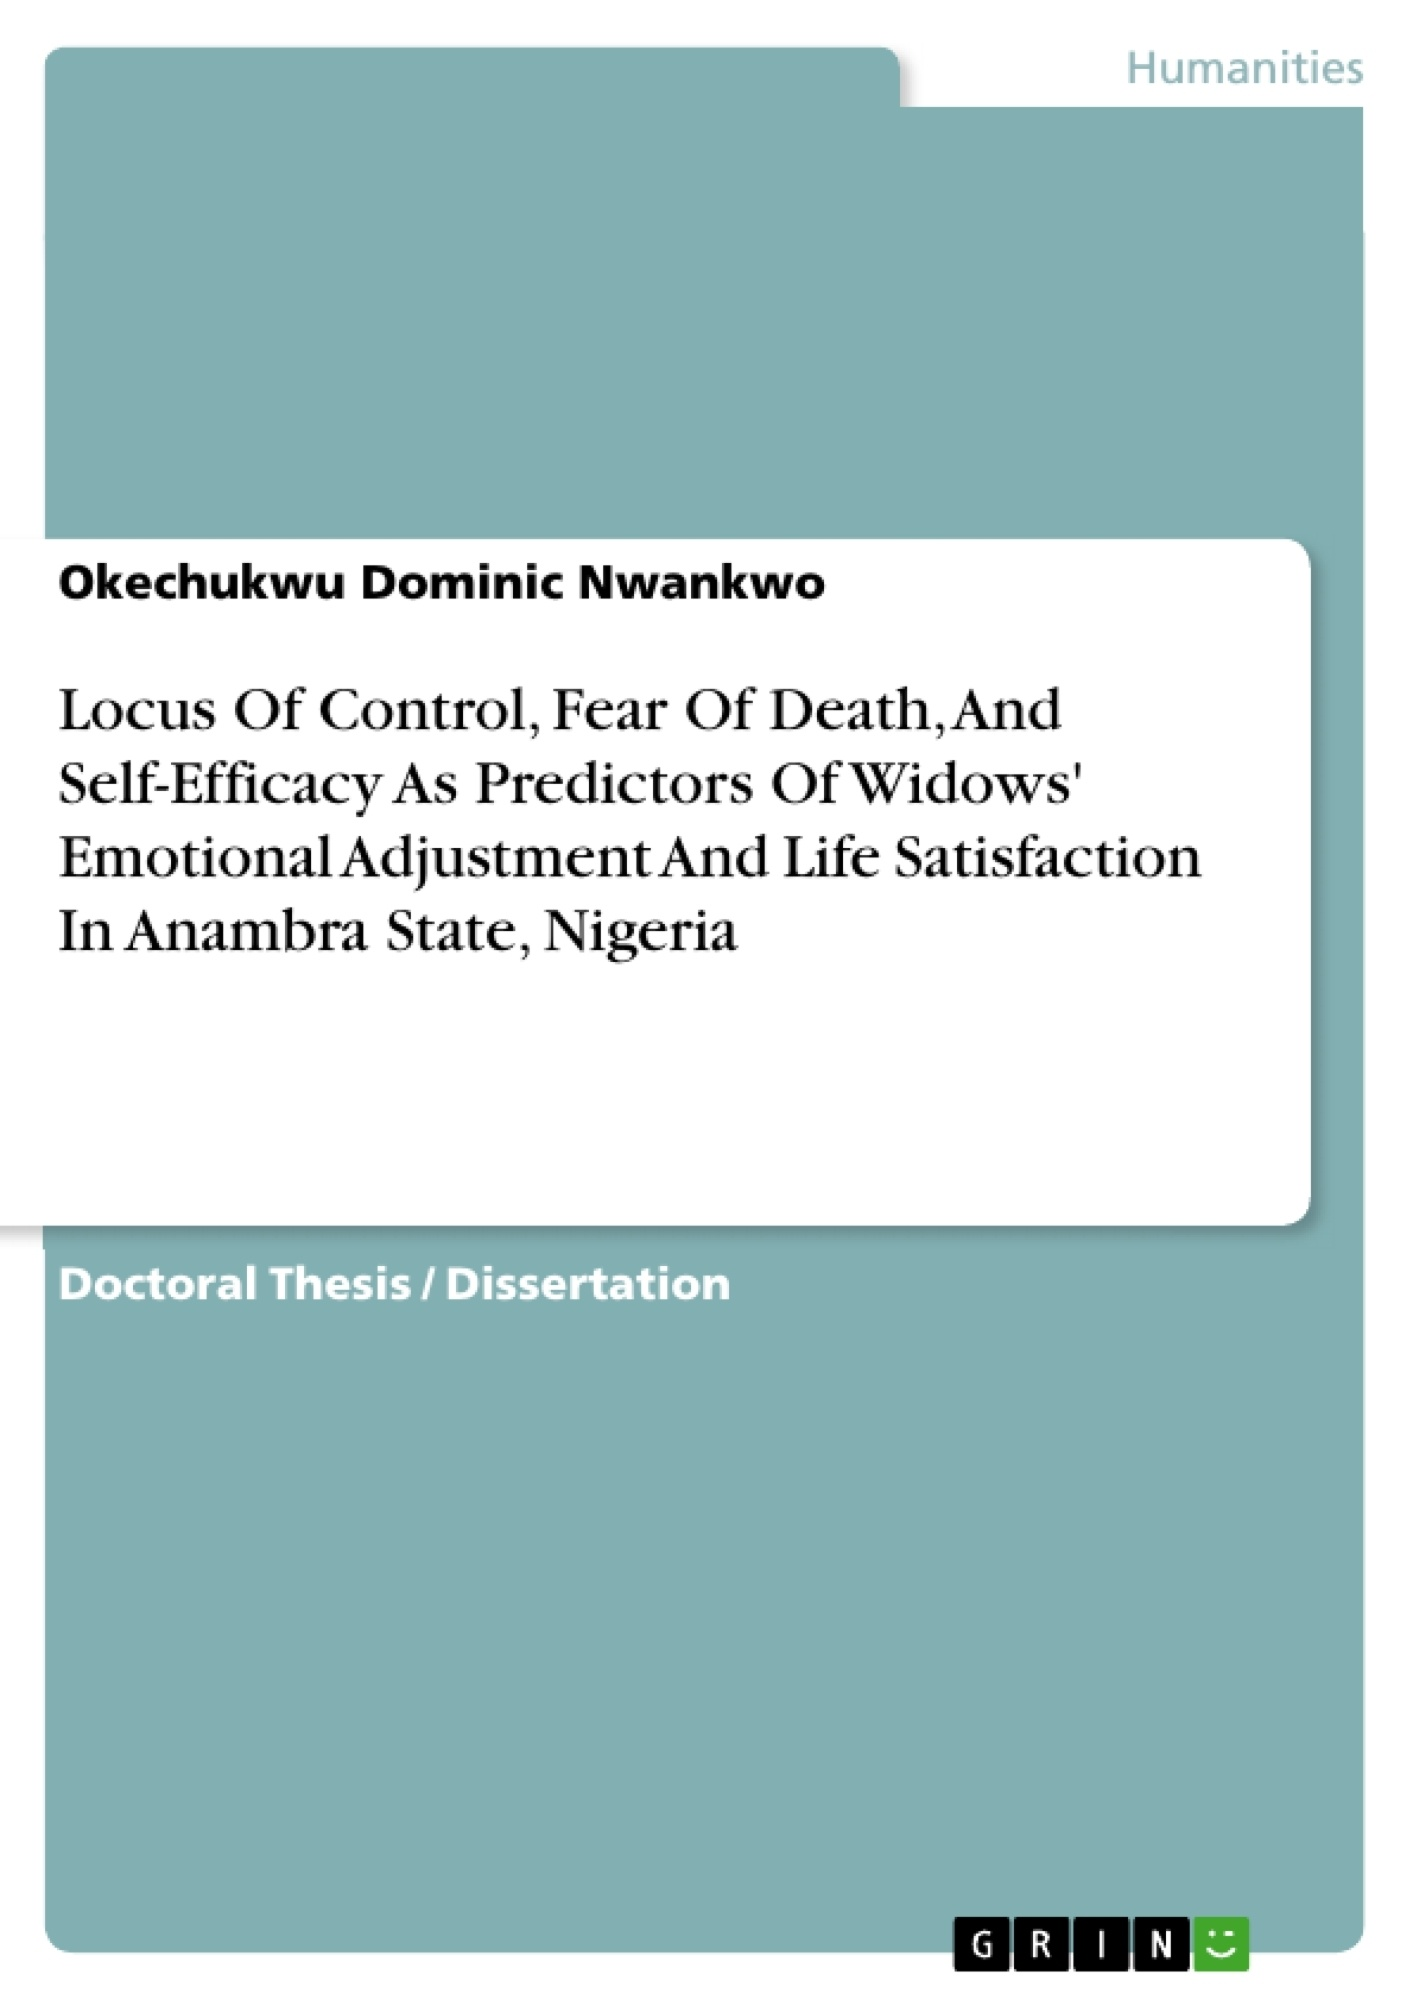 Title: How to Measure Widows´ Emotional Adjustment and Life Satisfaction? Locus of Control, Fear of Death and Self-Efficacy as Predictors